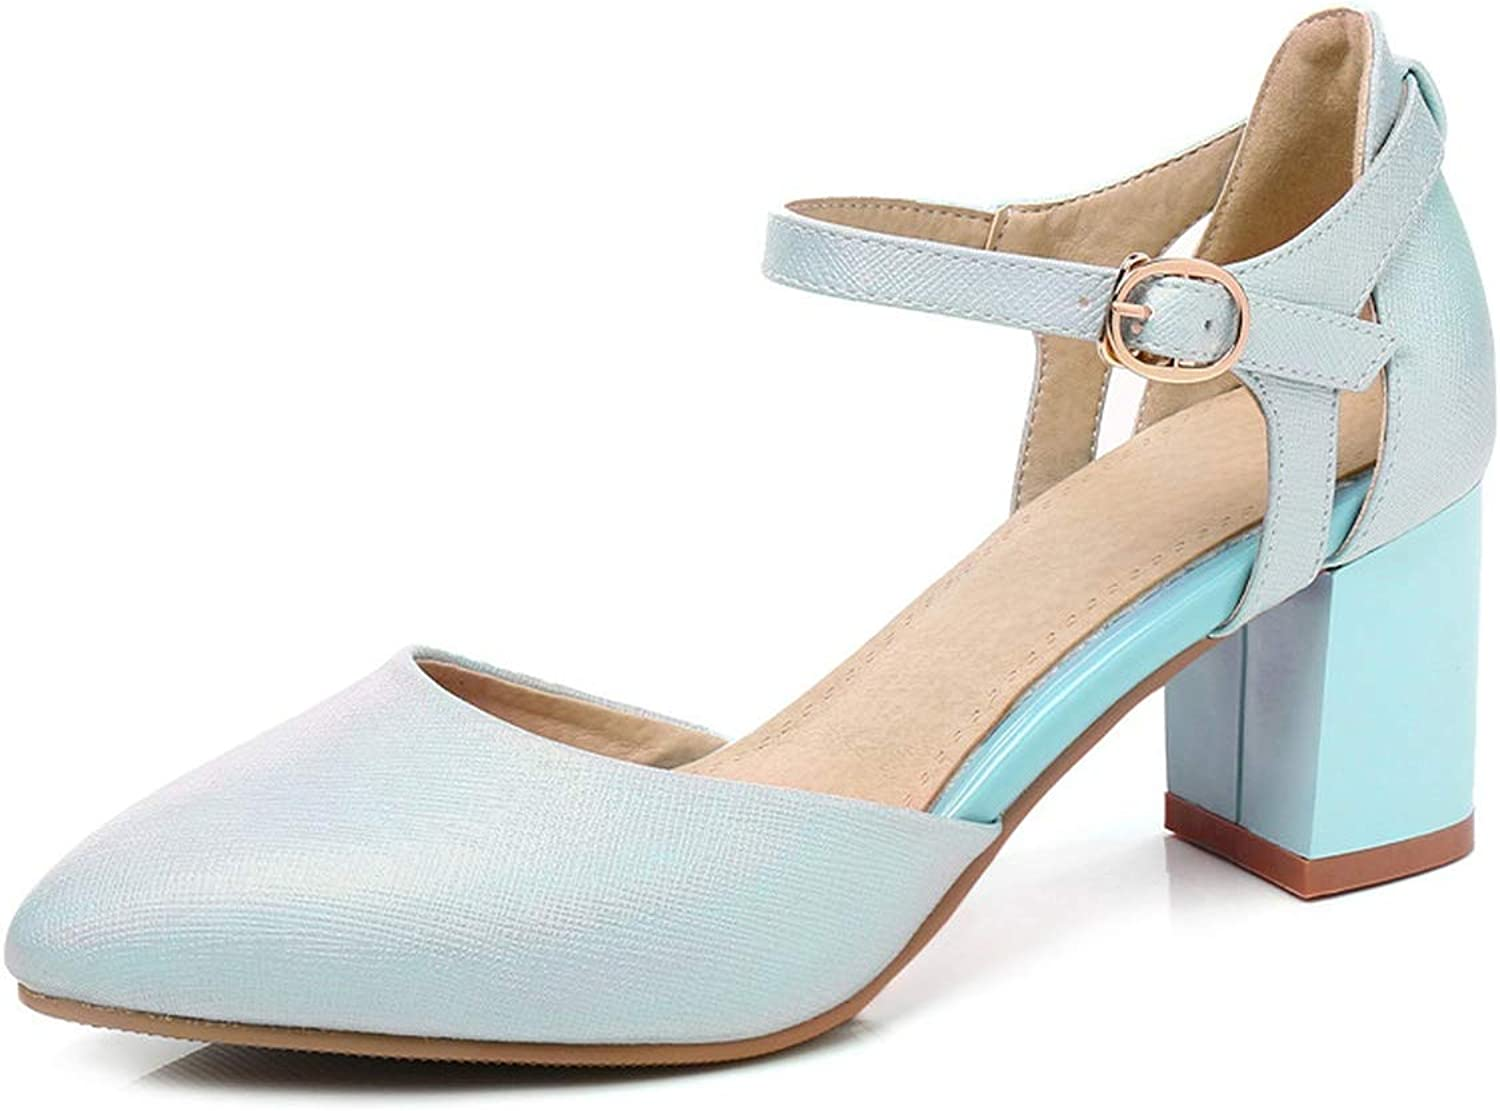 Pumps Women shoes Pointed Toe Summer shoes Simple Buckle Comfortable Square Heels shoes Woman,Sky bluee,9